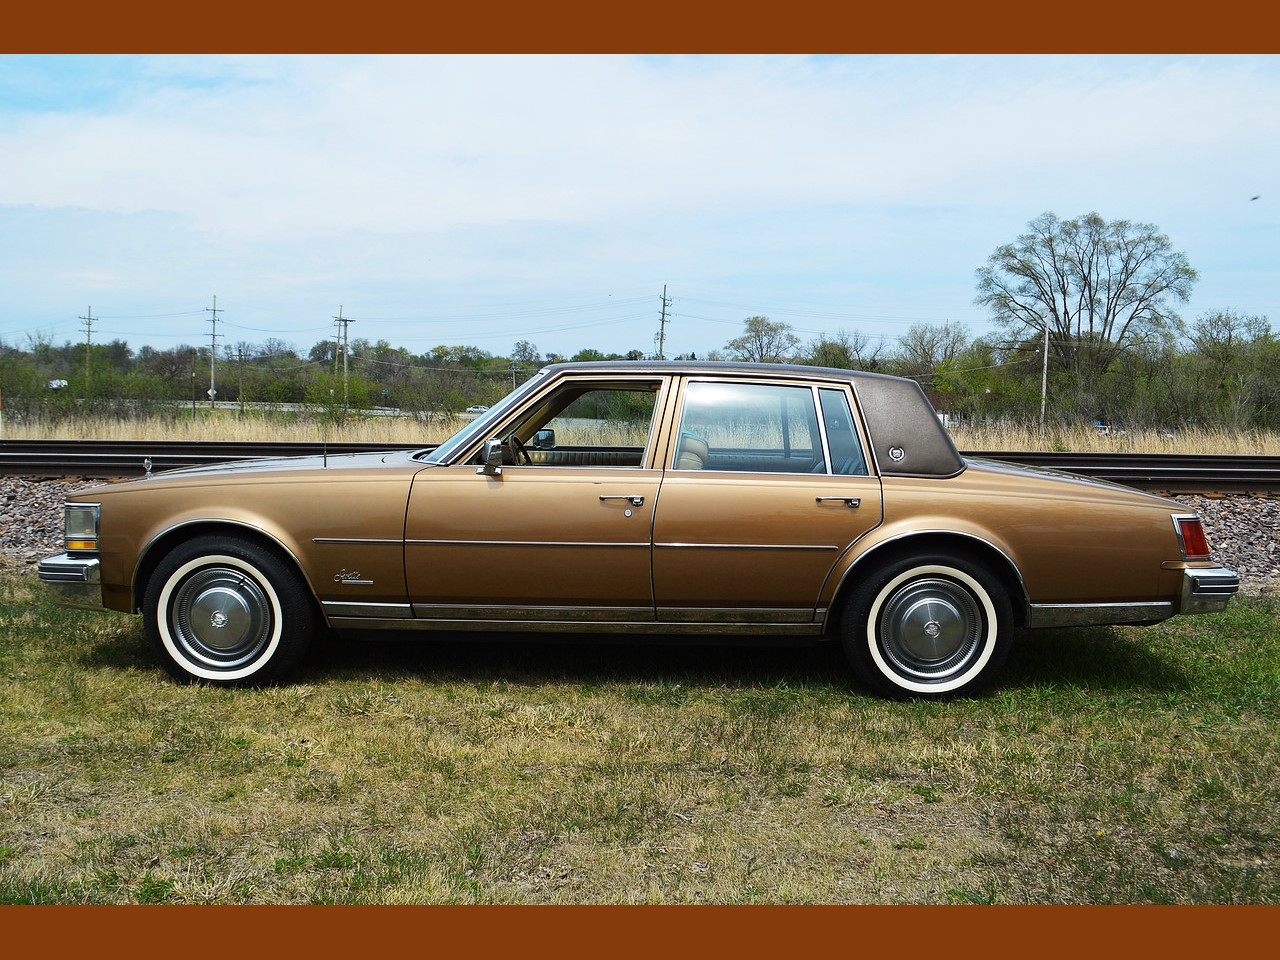 1976 Cadillac Seville The Penalty Of Leadership